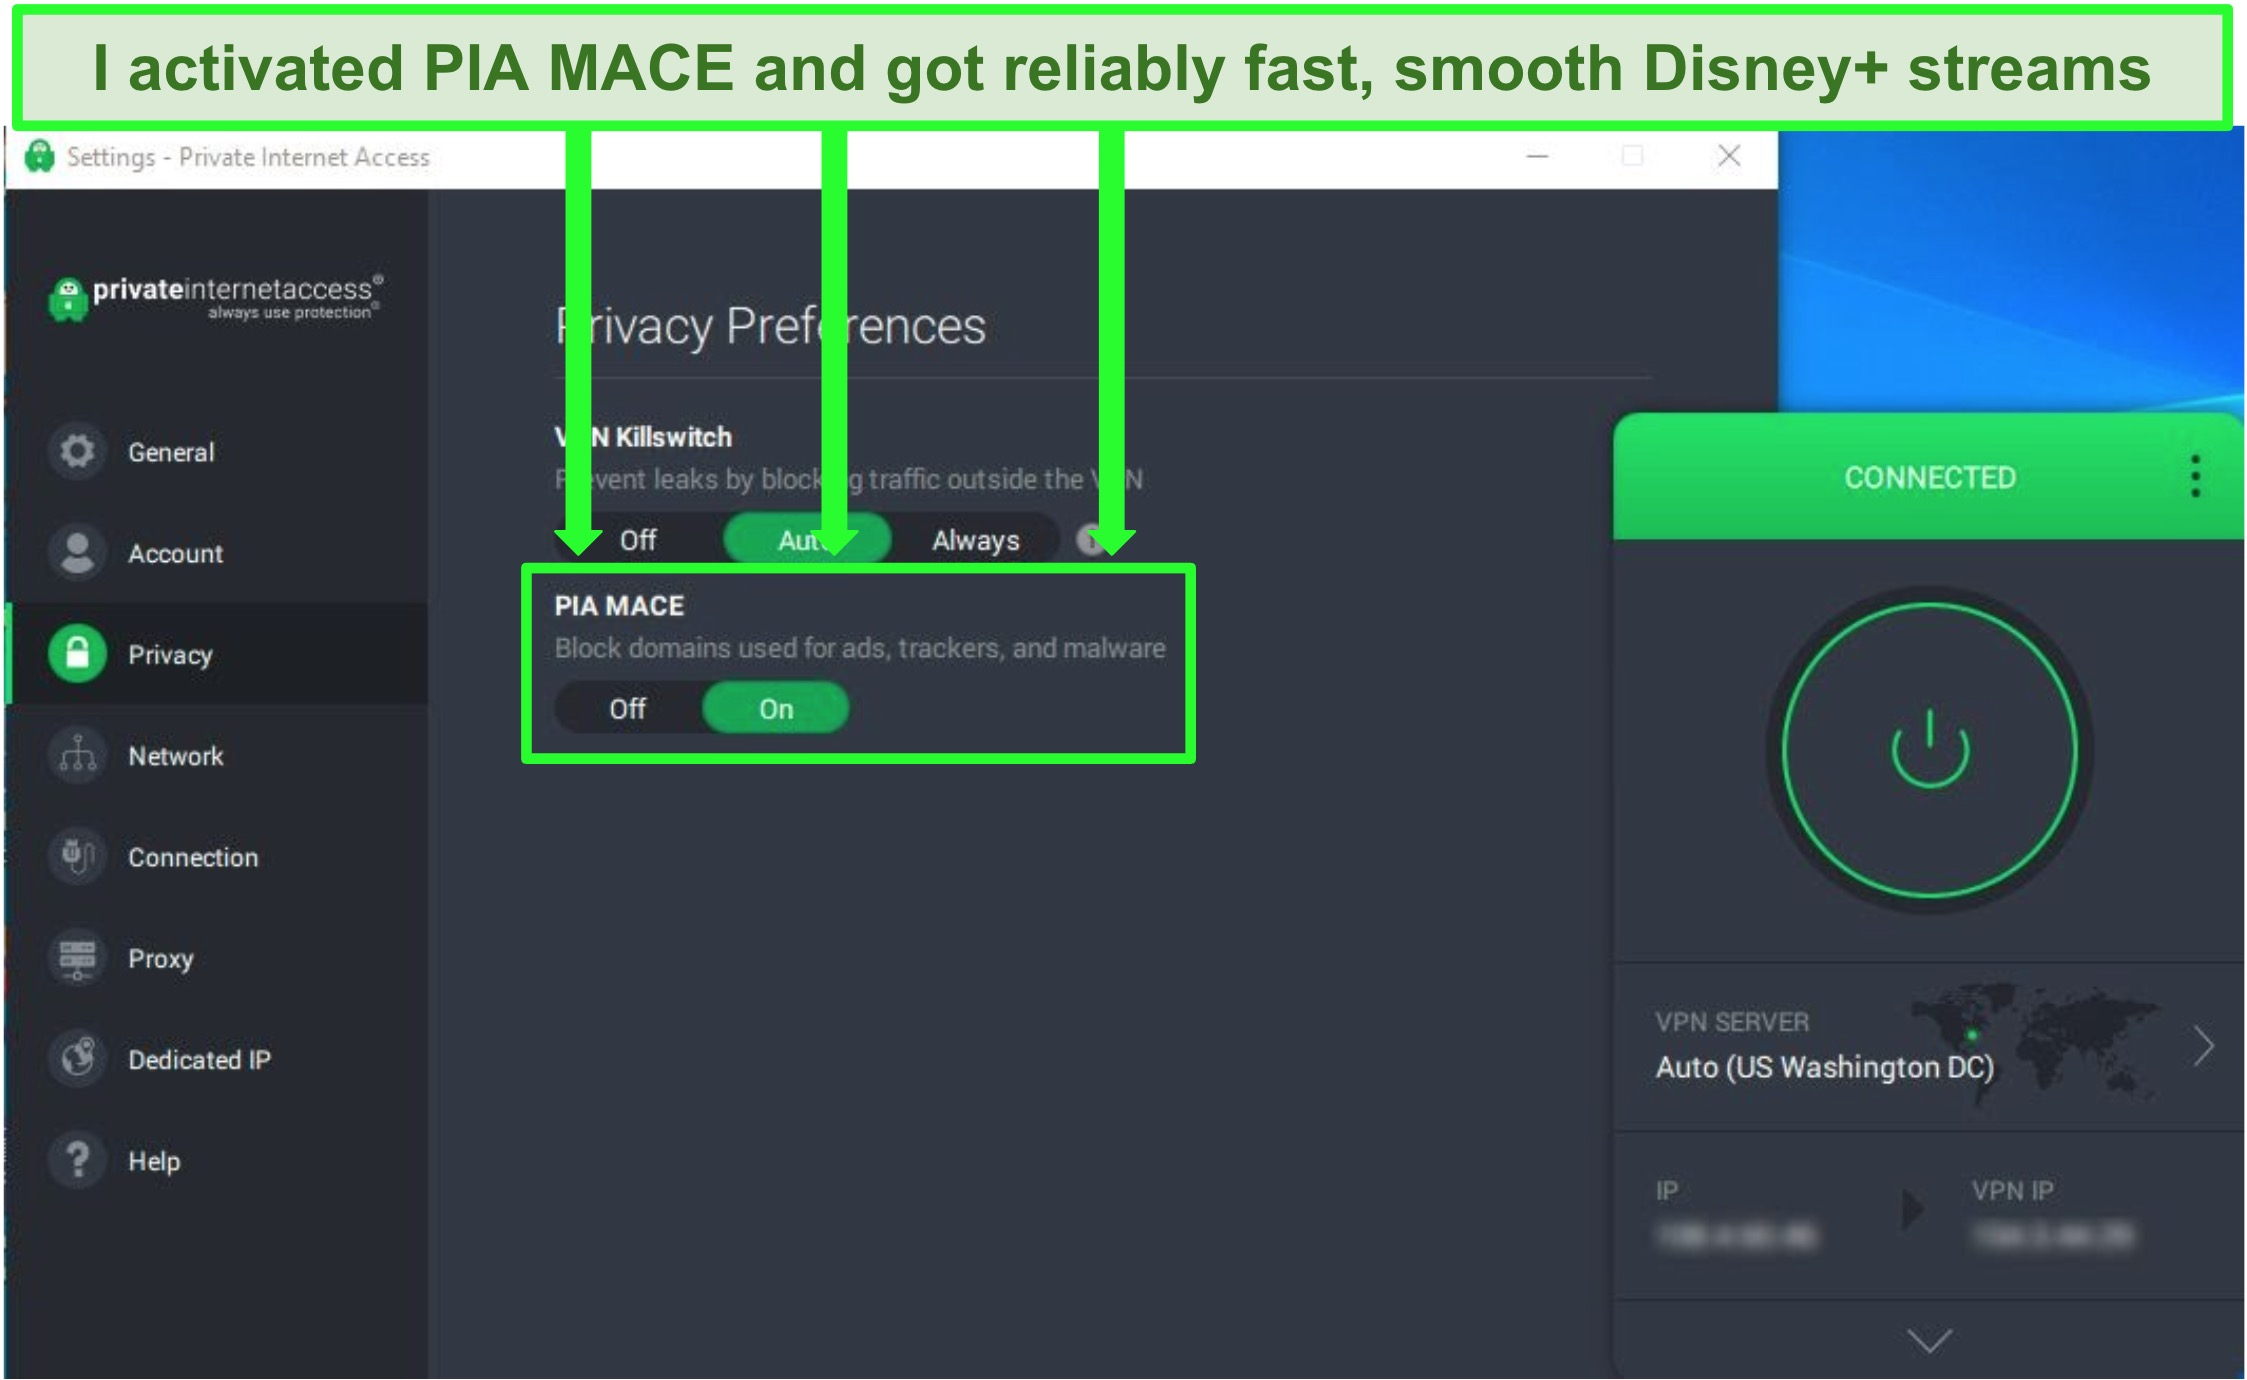 Screenshot of PIA's user interface showing the PIA MACE option enabled